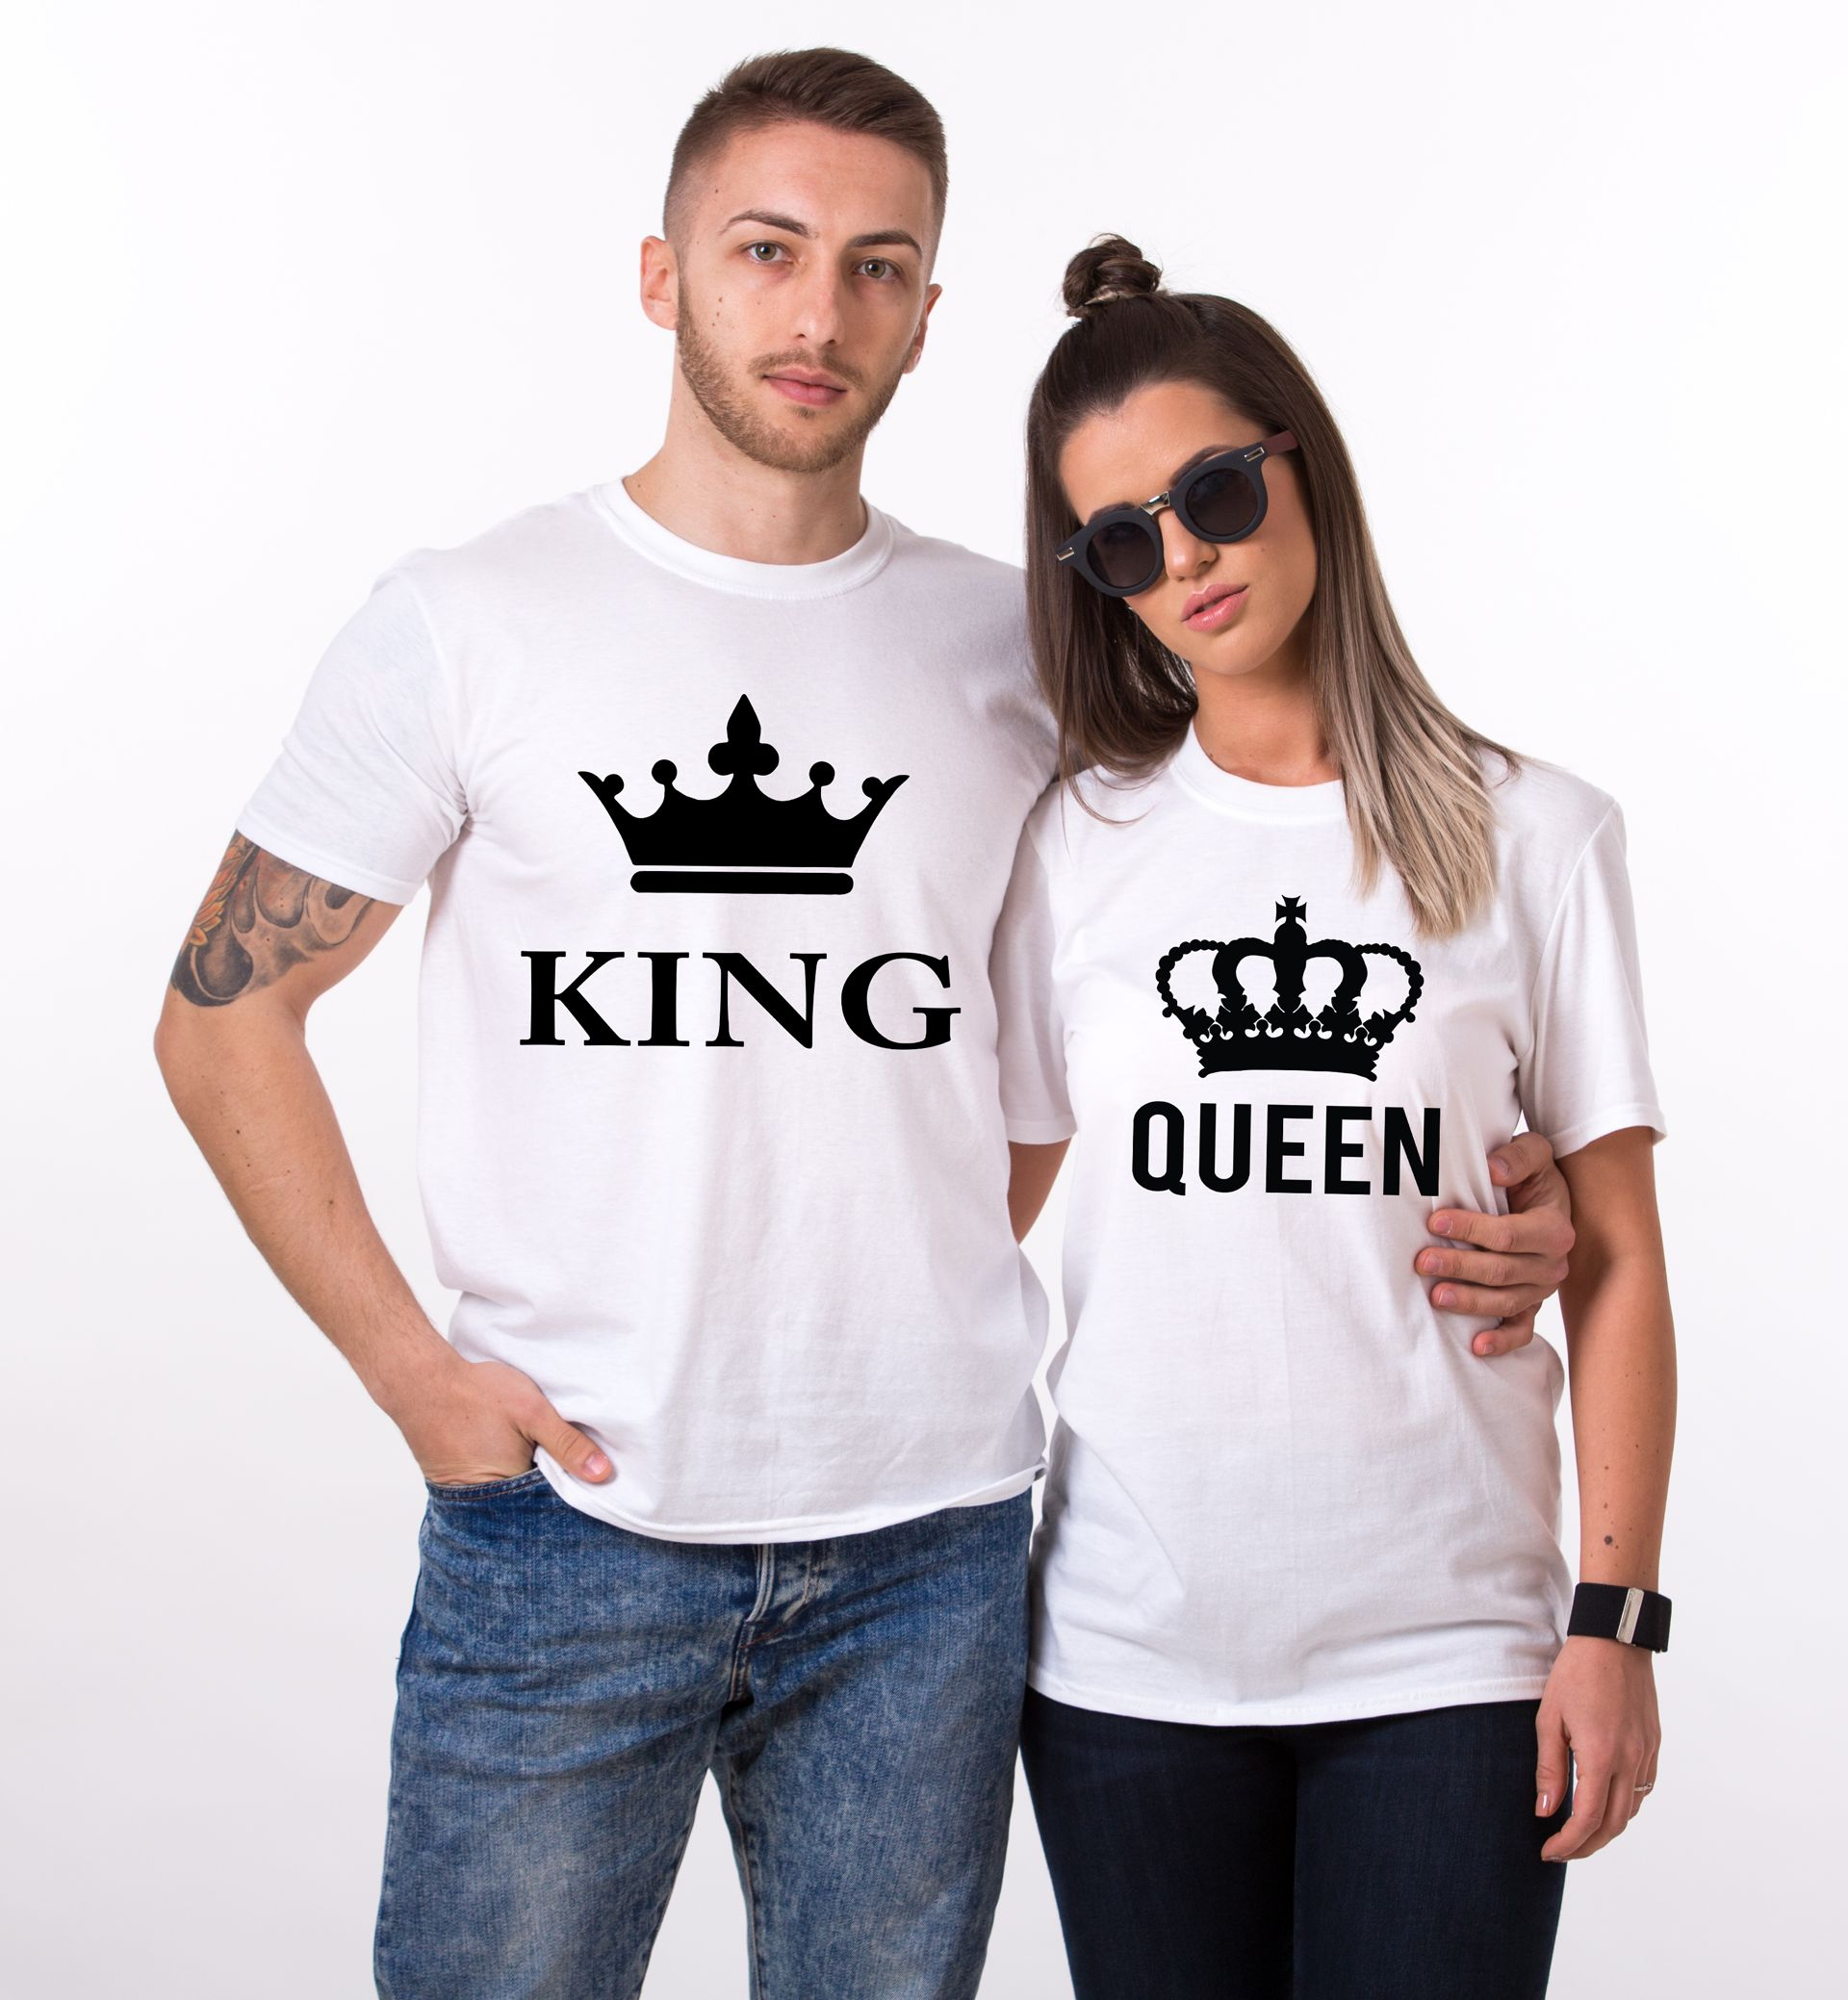 King Queen Couples Shirts Matching Shirts Couples T Shirt